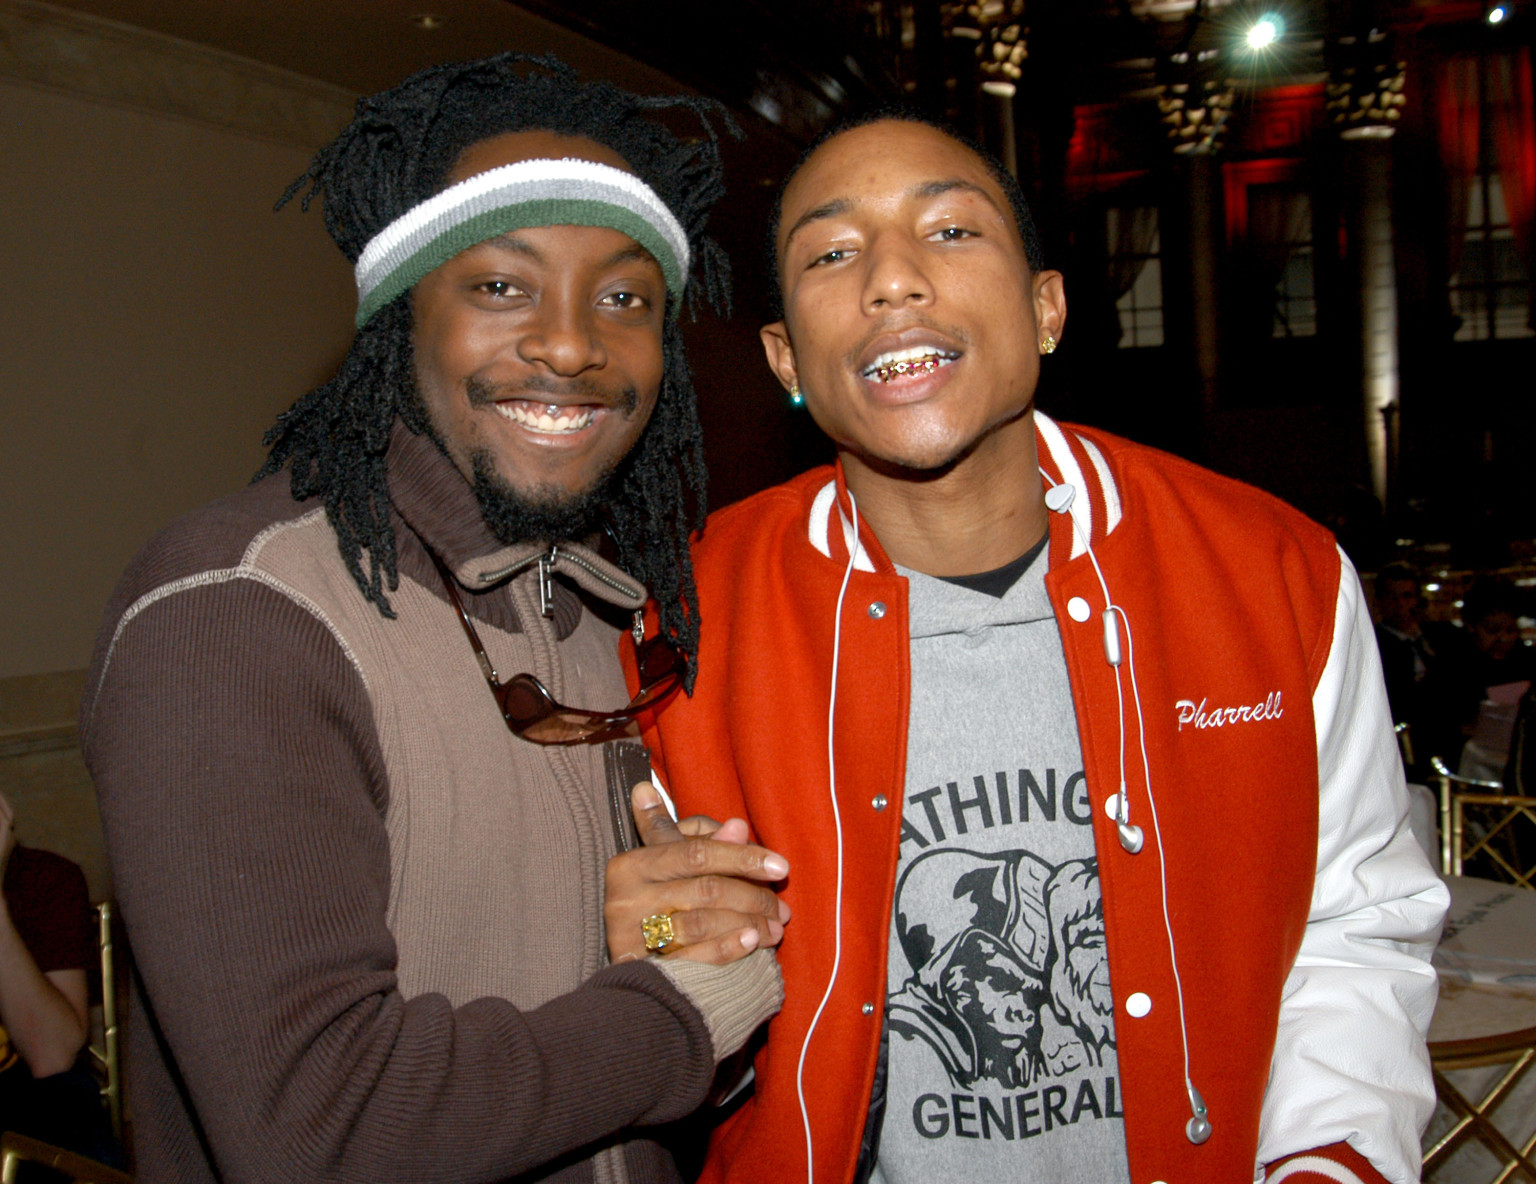 Pharrell and Will.i.am